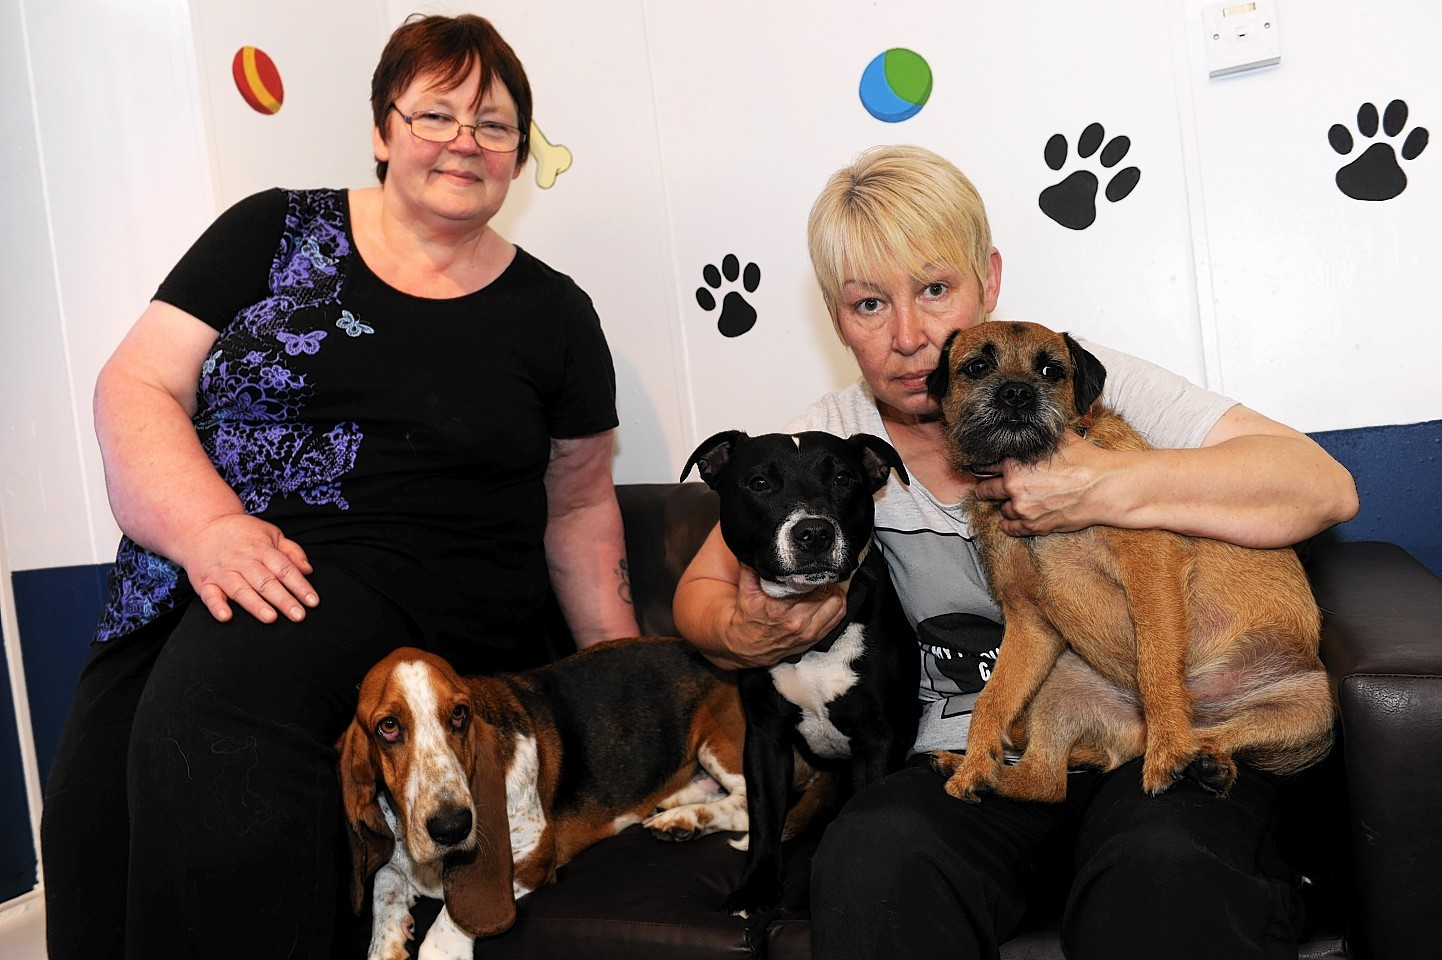 Esther Riddell, left, and Meg Grant, right, feared they would no longer be able to care for dogs.